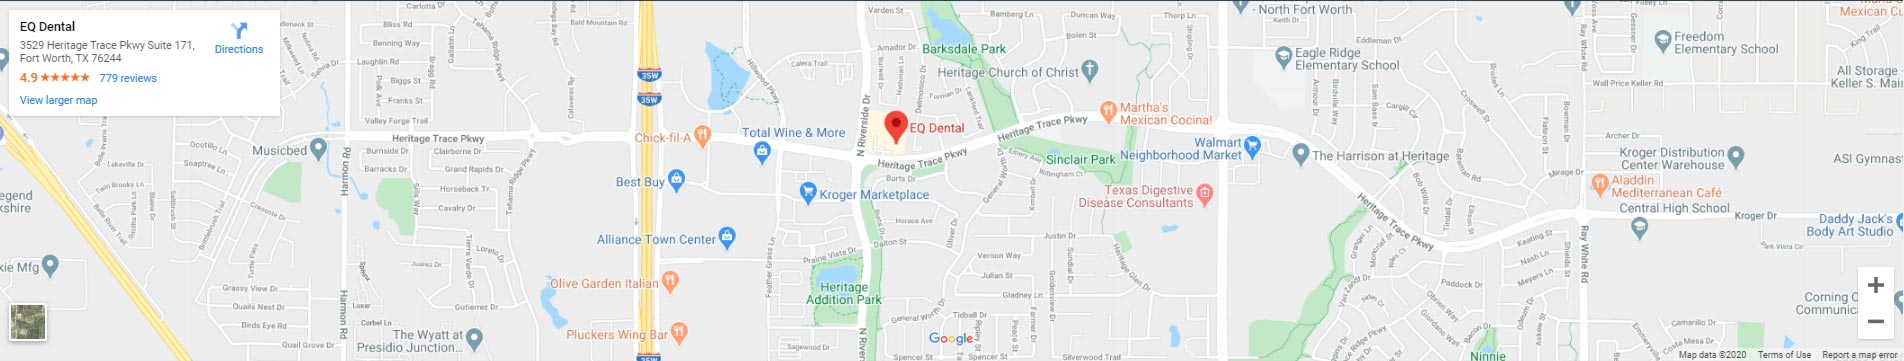 eq-dental-fort-worth-map